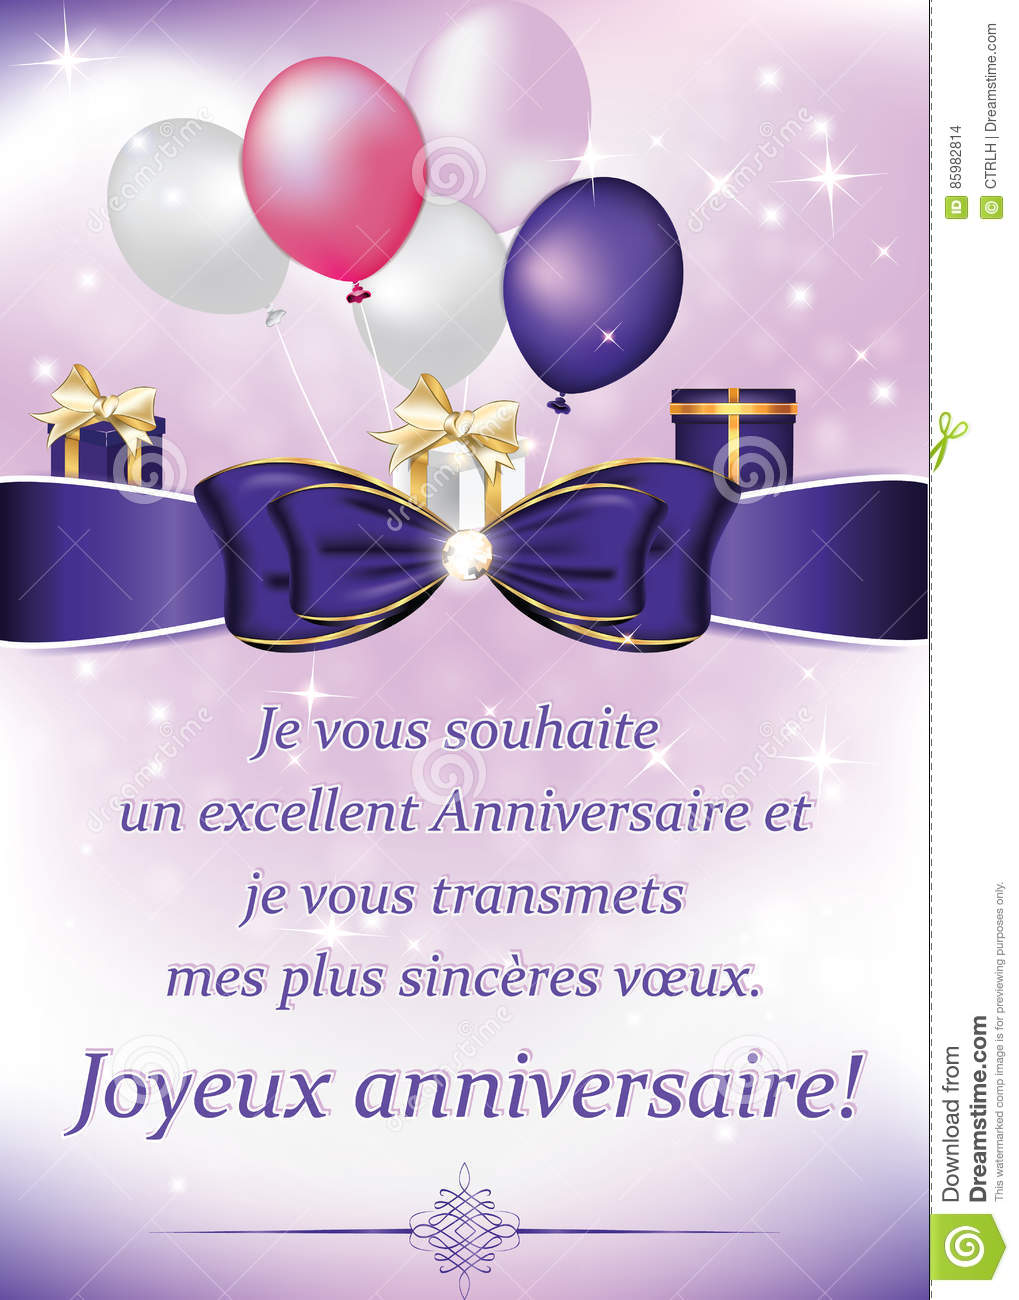 French birthday greeting card with balloons and gifts stock photo french birthday greeting card with balloons and gifts m4hsunfo